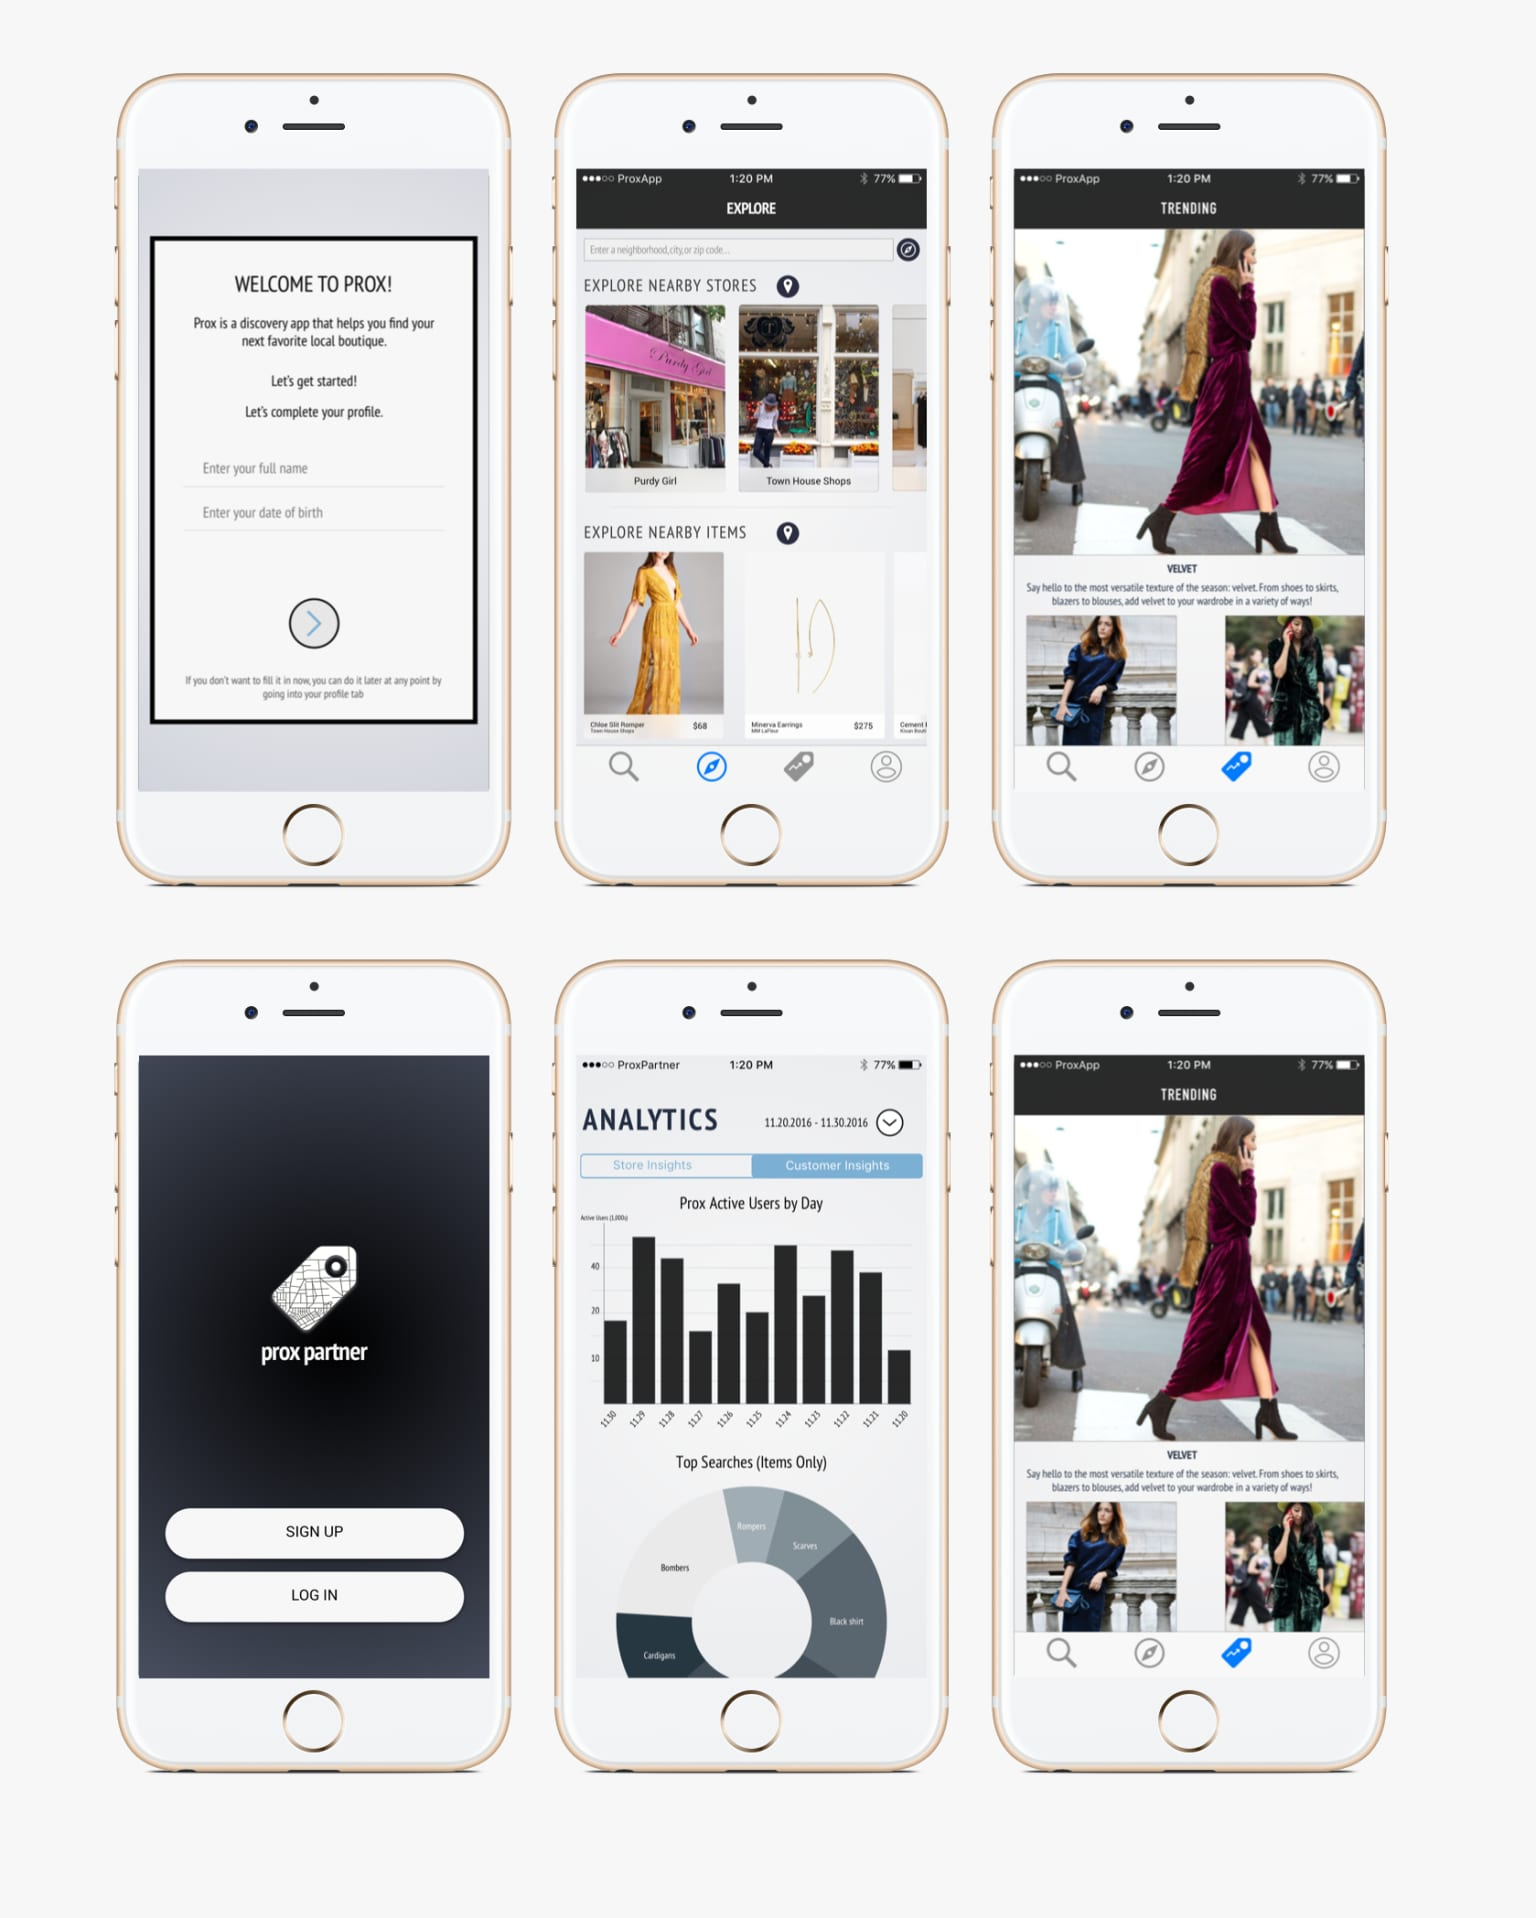 Prox - An App for Finding Your Favorite Local Boutique